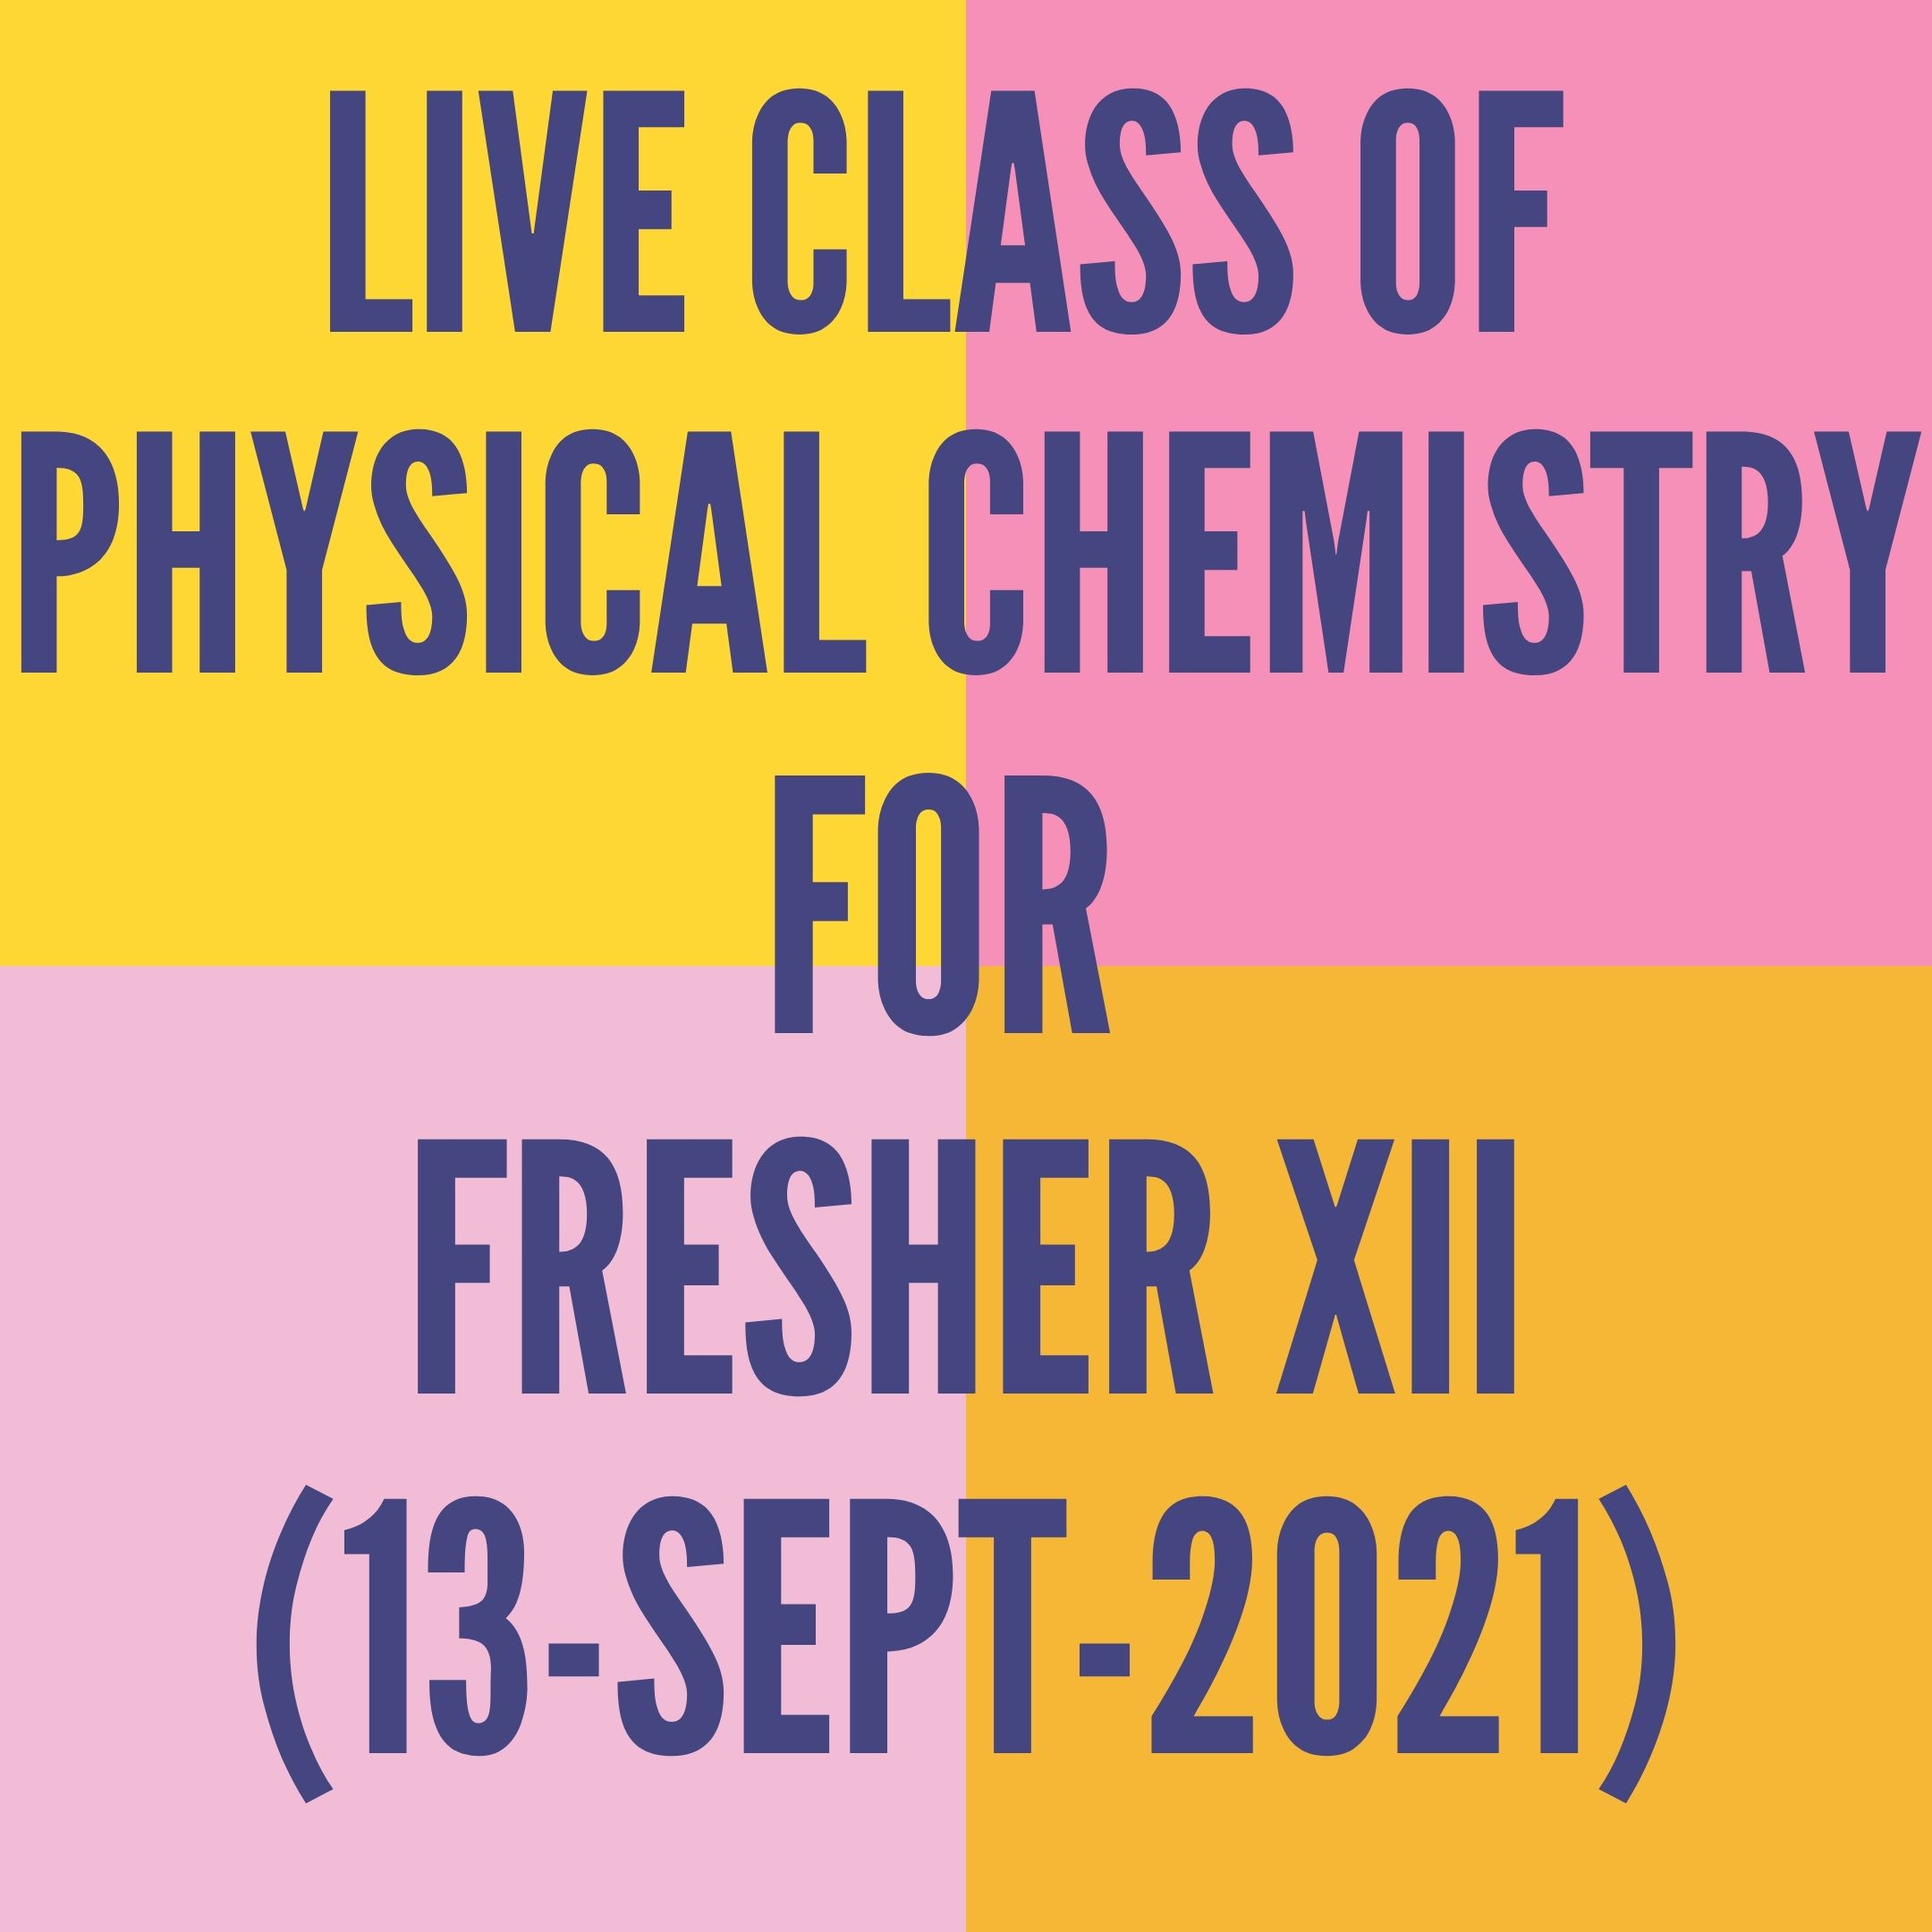 LIVE CLASS OF PHYSICAL CHEMISTRY FOR FRESHER XII (13-SEPT-2021) CHEMICAL KINETICS